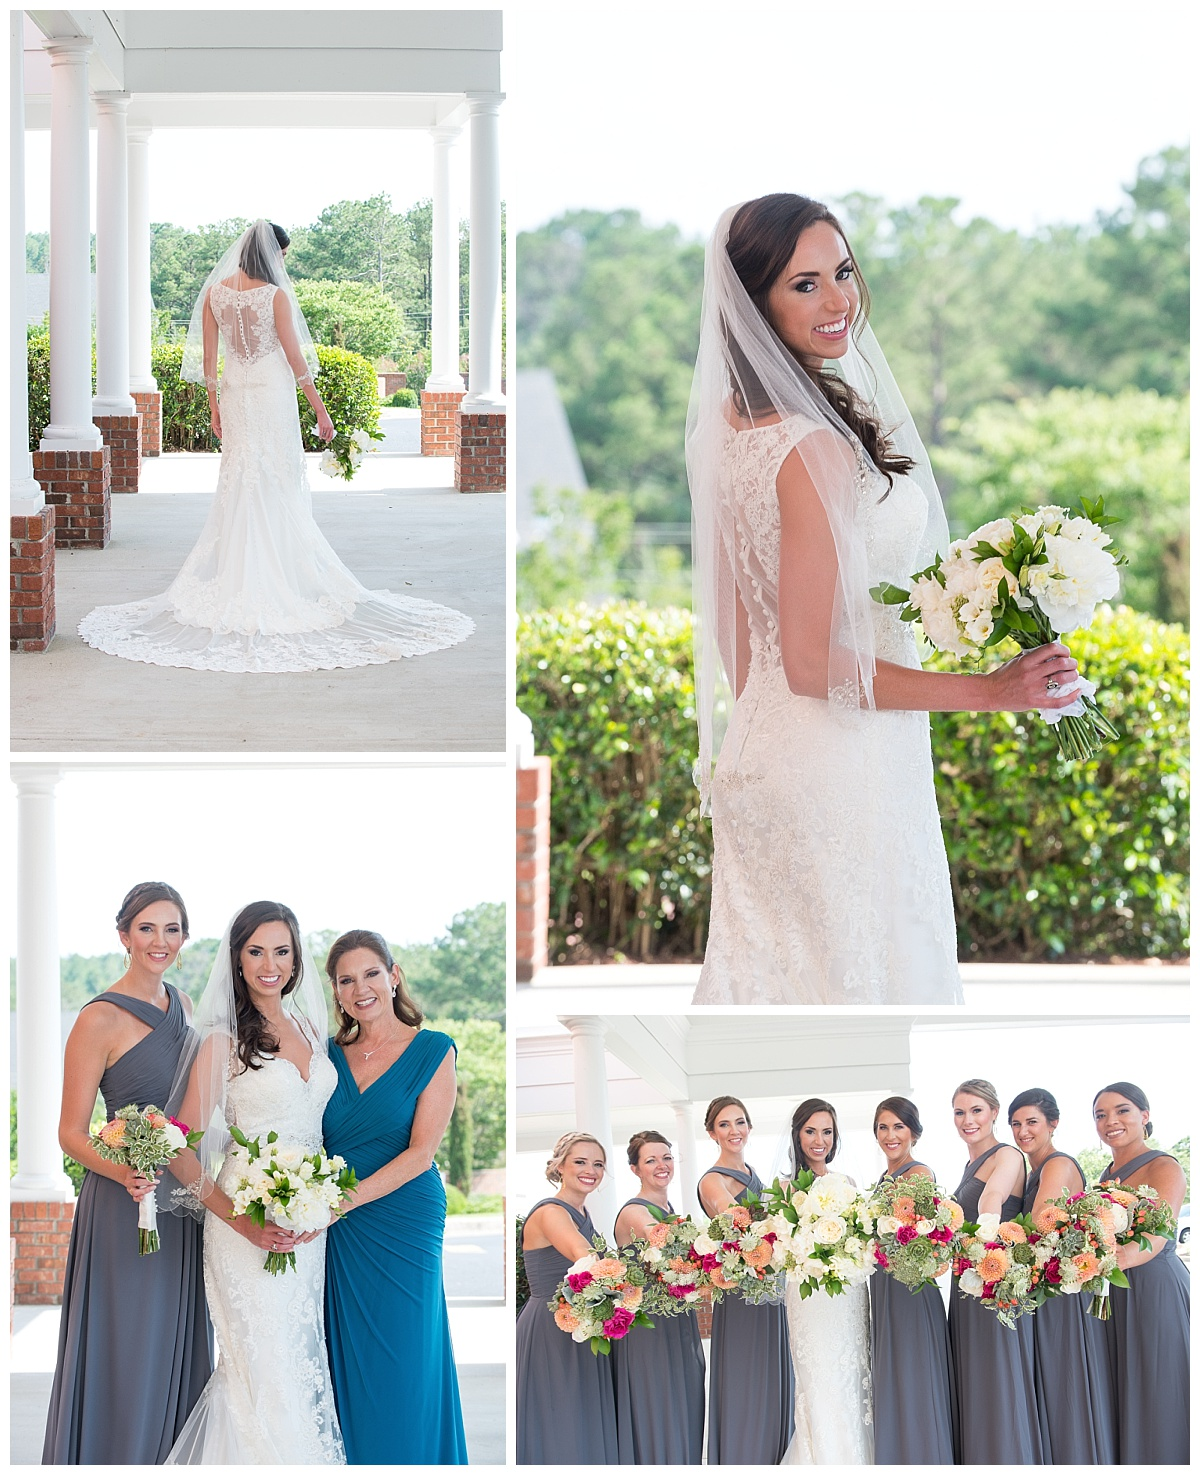 Brides photos